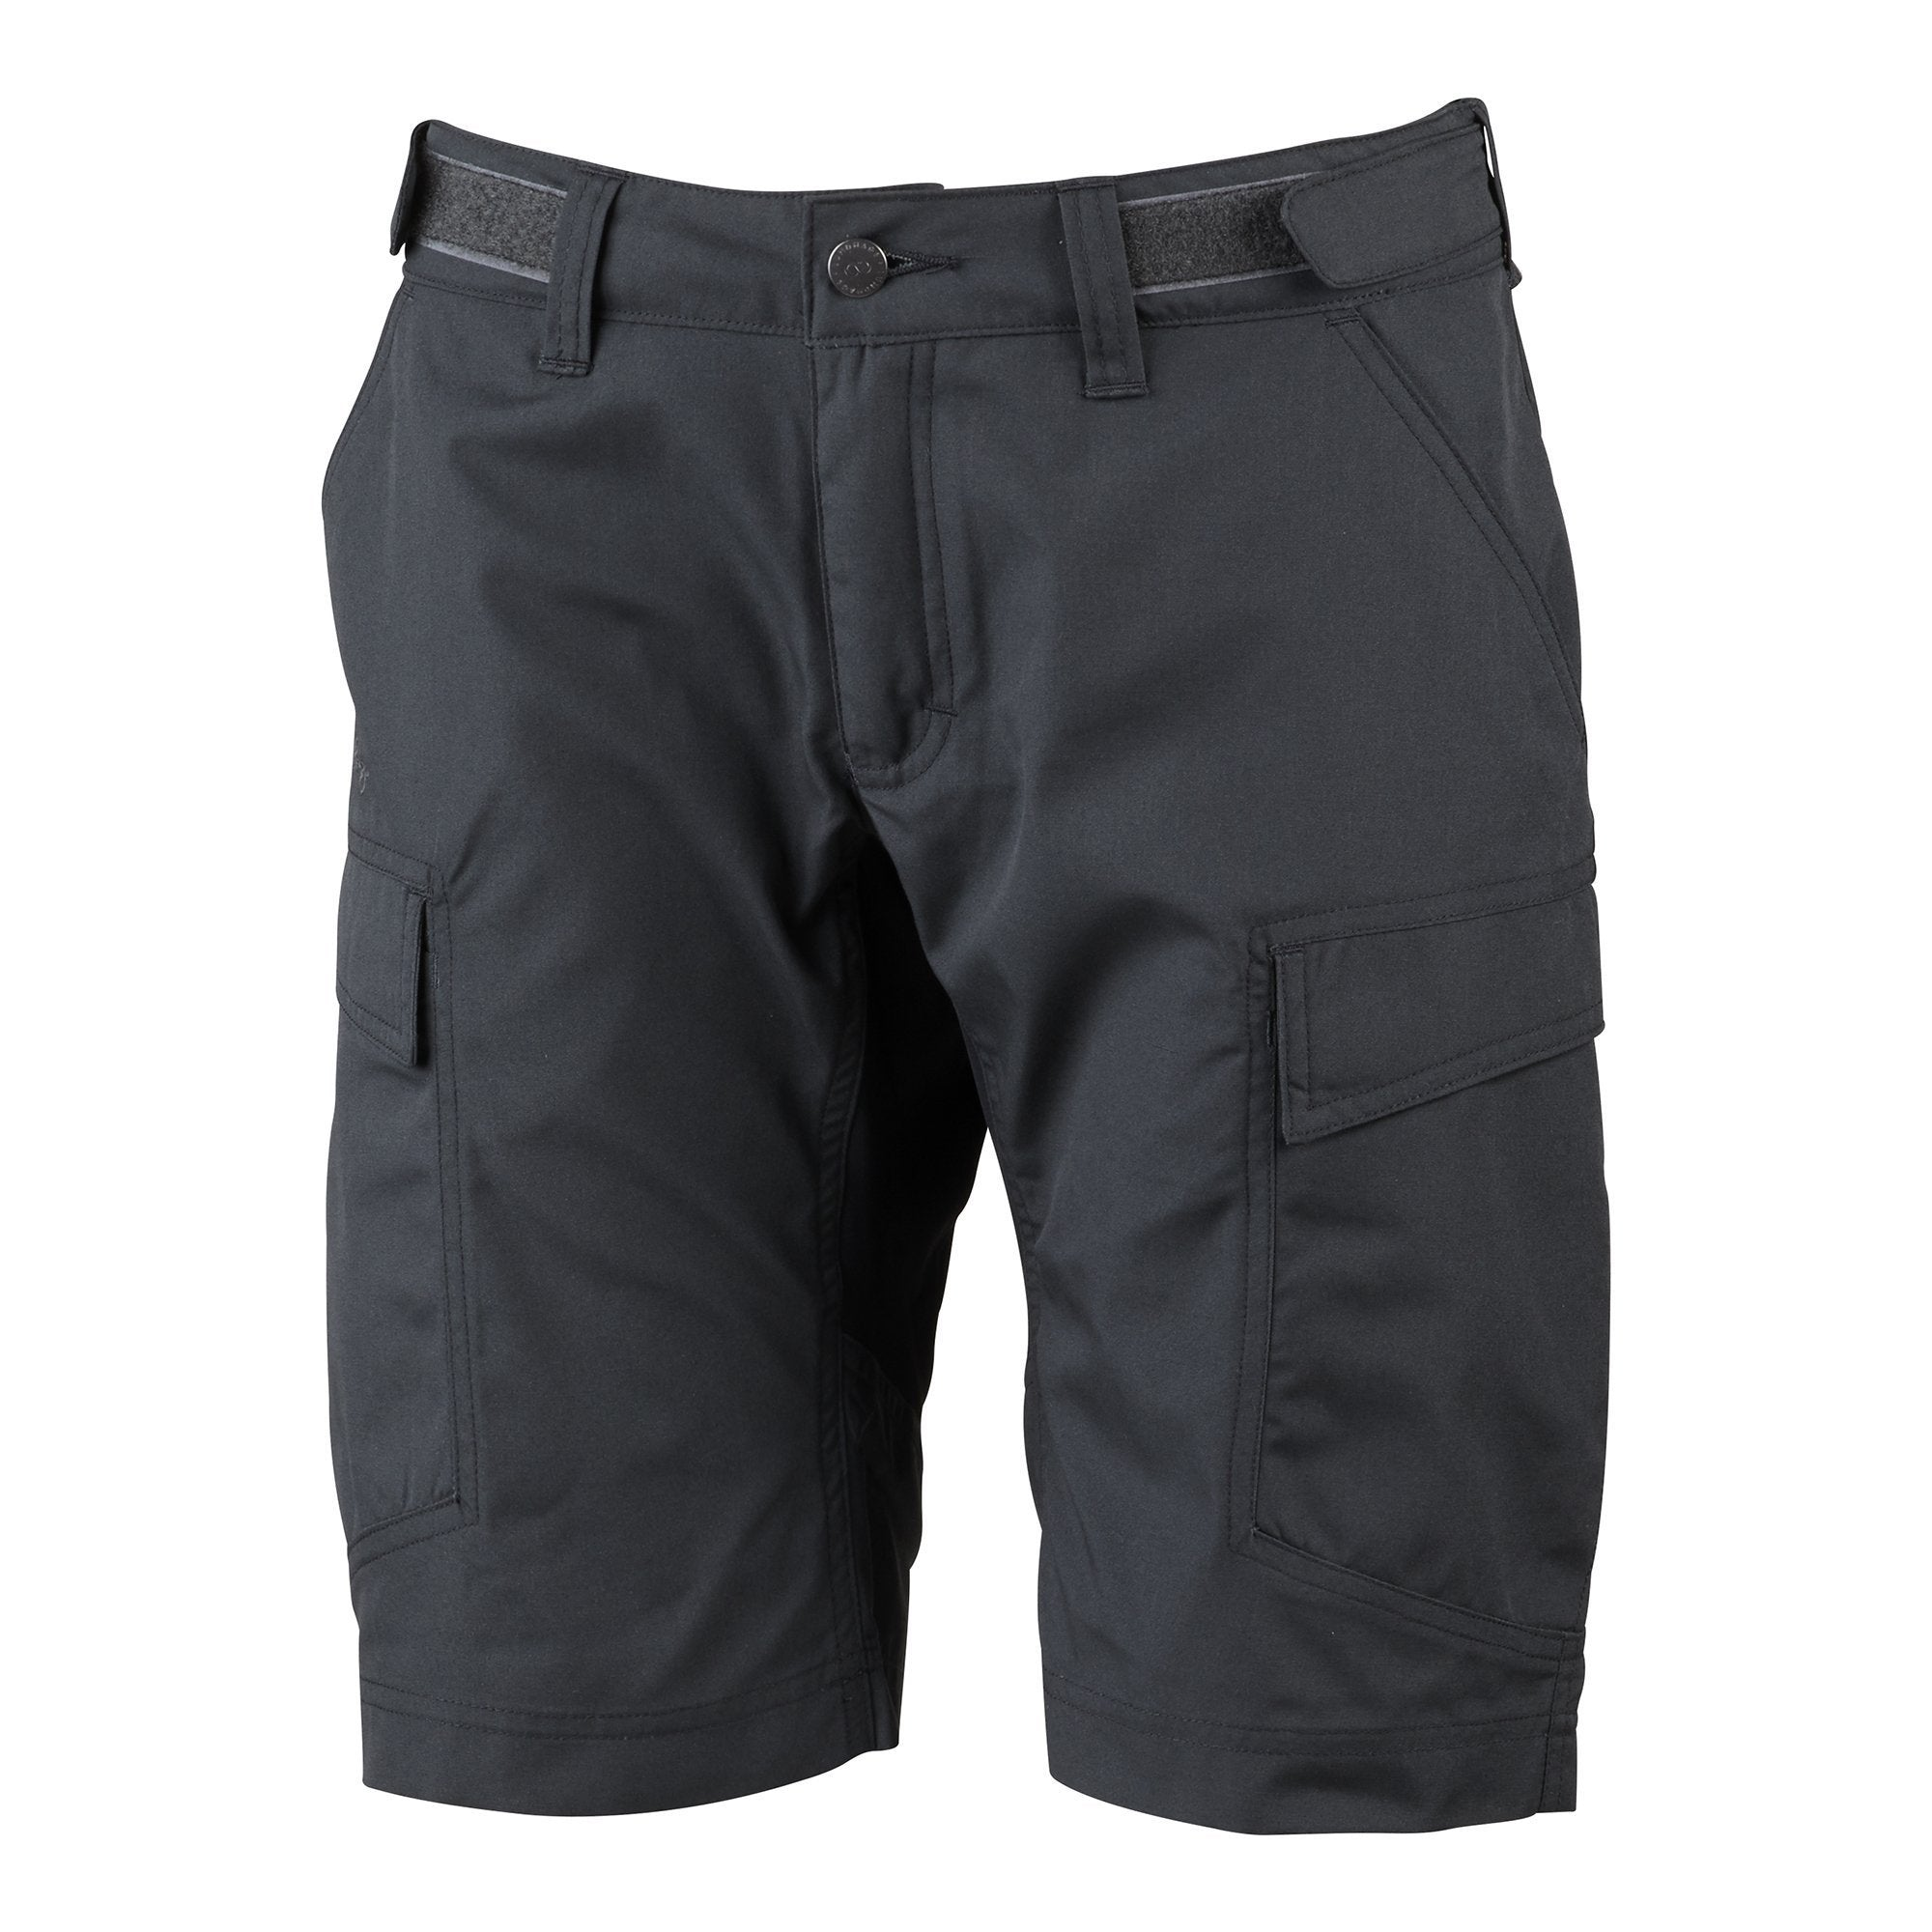 Vanner Shorts - Charcoal/Black - Dam - Vindpinad